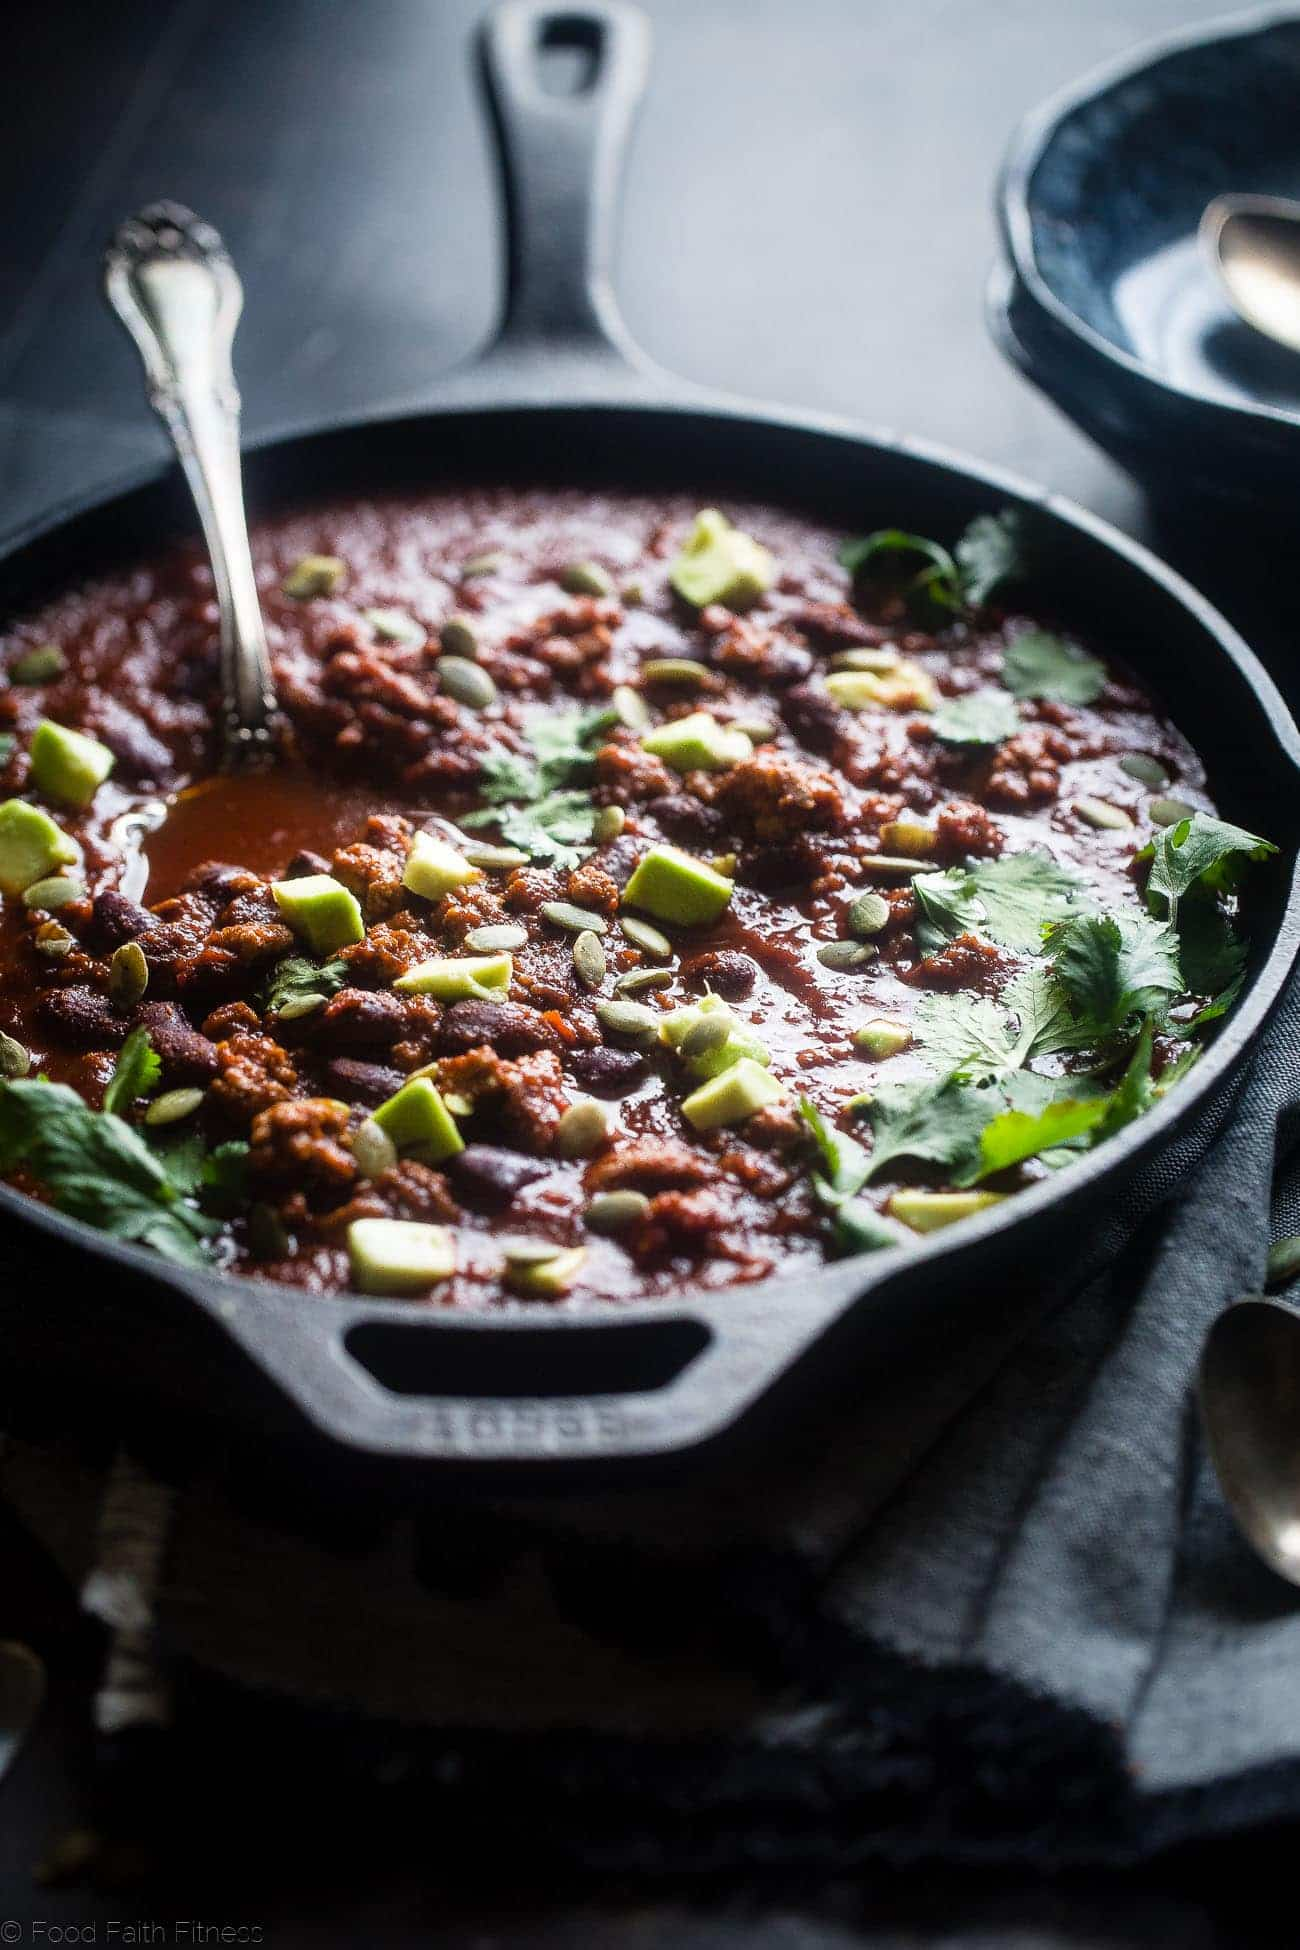 One-Pot Smoky and Sweet Turkey Chili - This turkey chili is an easy and gluten free weeknight meal that's perfect for cold, winter nights. It's healthy comfort food that the whole family will love! | Foodfaithfitness.com | @FoodFaithFit